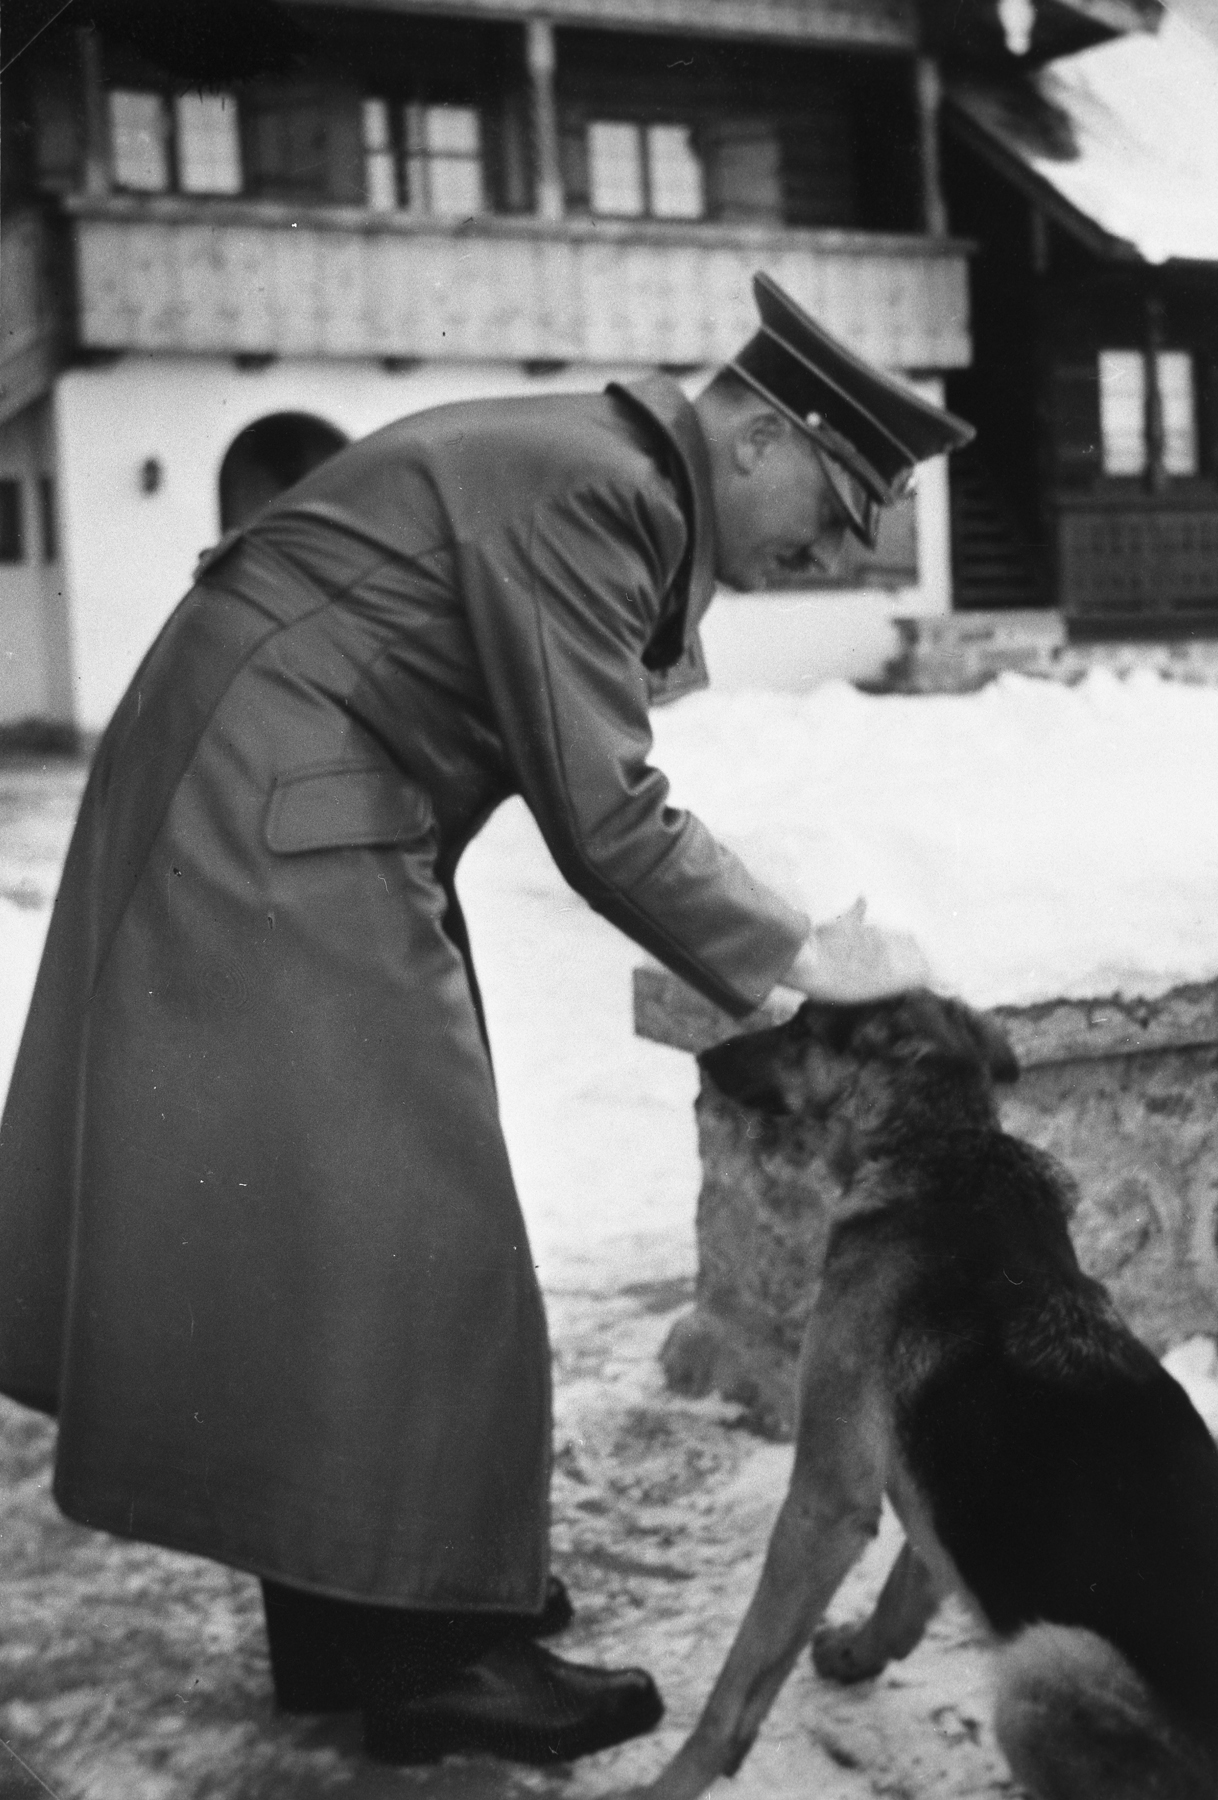 Adolf Hitler and his dog Wolf on the Berghof terrace early January 1940, from Eva Braun's albums